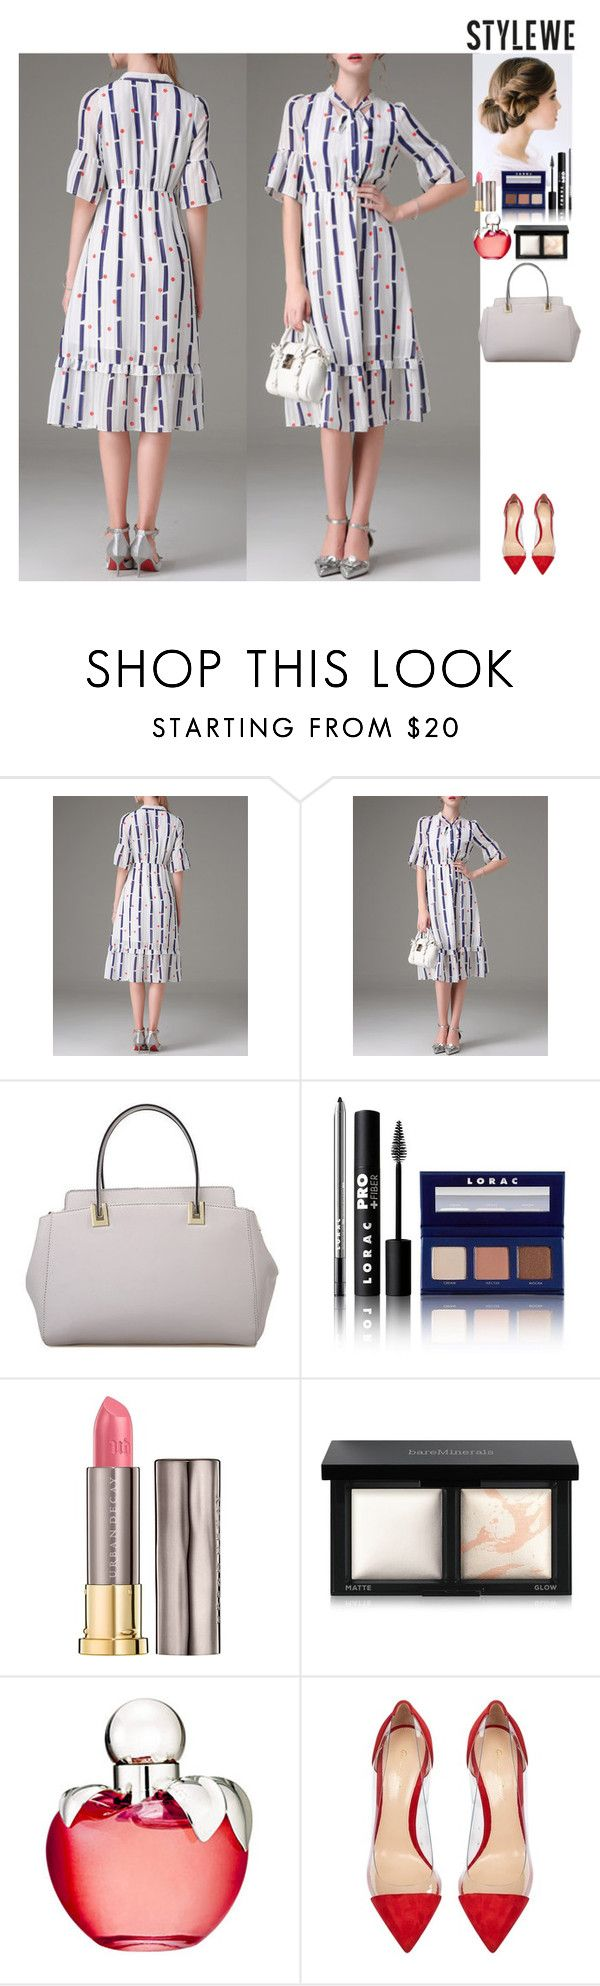 Outfit StyleWe by eliza-redkina on Polyvore featuring мода, Gianvito Rossi, Bare Escentuals, LORAC, Urban Decay, Nina Ricci, outfit, like, look and event